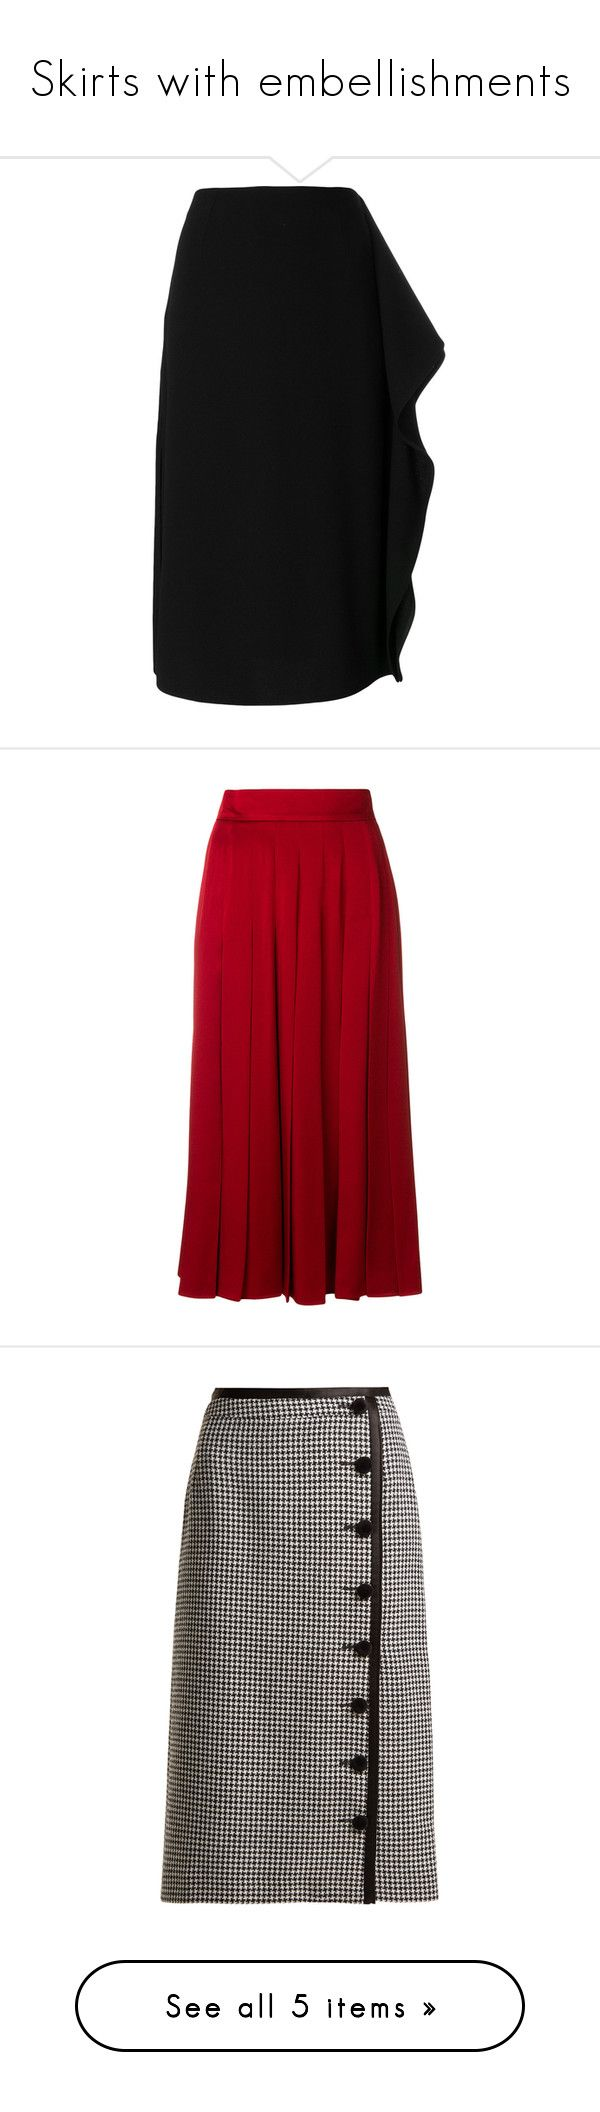 """Skirts with embellishments"" by shamrockclover ❤ liked on Polyvore featuring skirts, black, pencil skirts, zip back pencil skirt, high waisted skirt, mid calf length skirts, mid length skirts, red, pleated skirts and midi skirt"